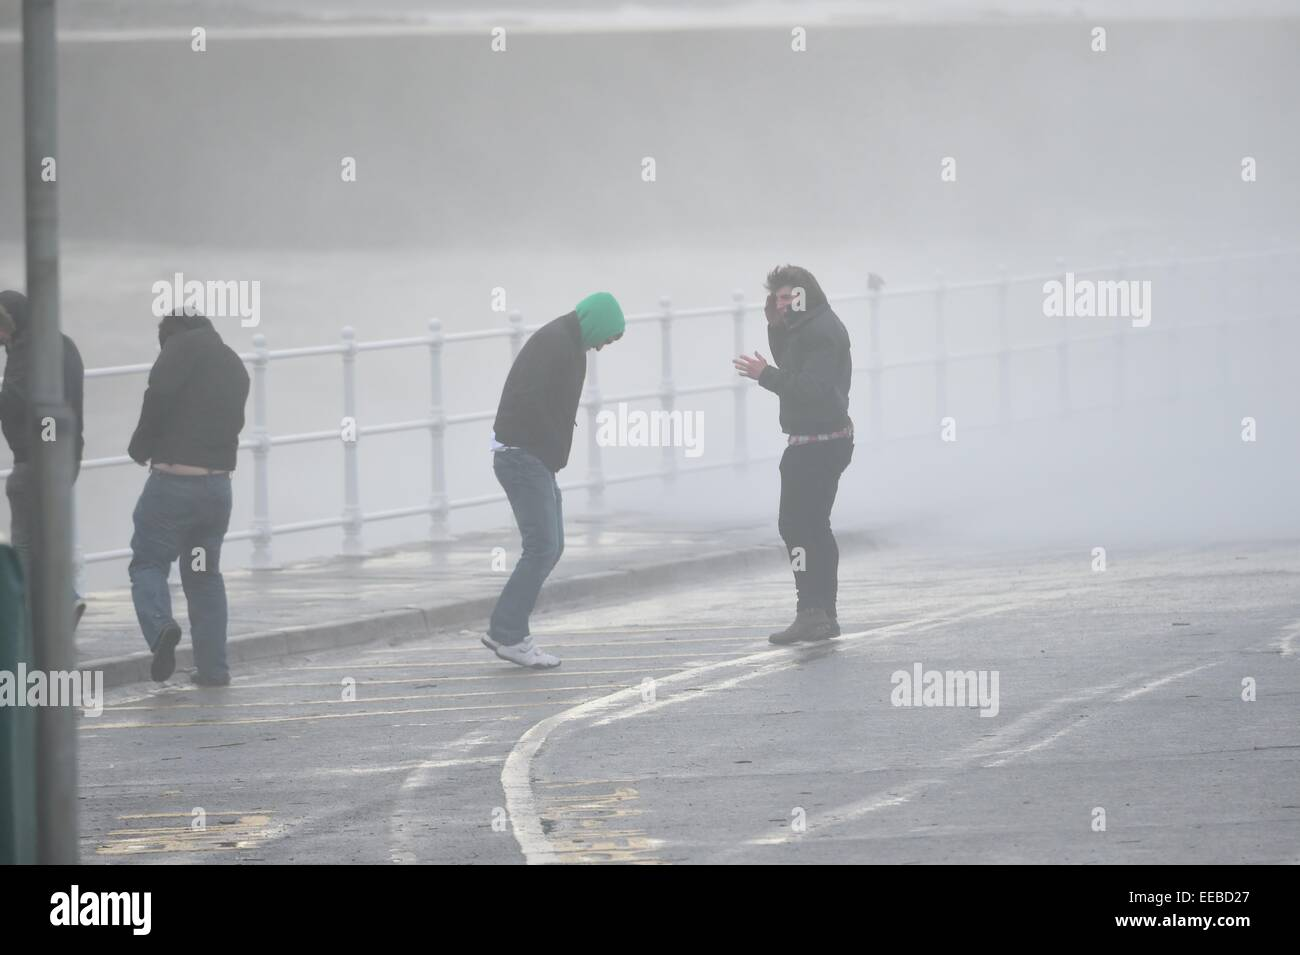 Aberystwyth, Wales, UK. 15th January, 2015. UK Weather: A group of young men get soaked by the sea spray as gale - Stock Image